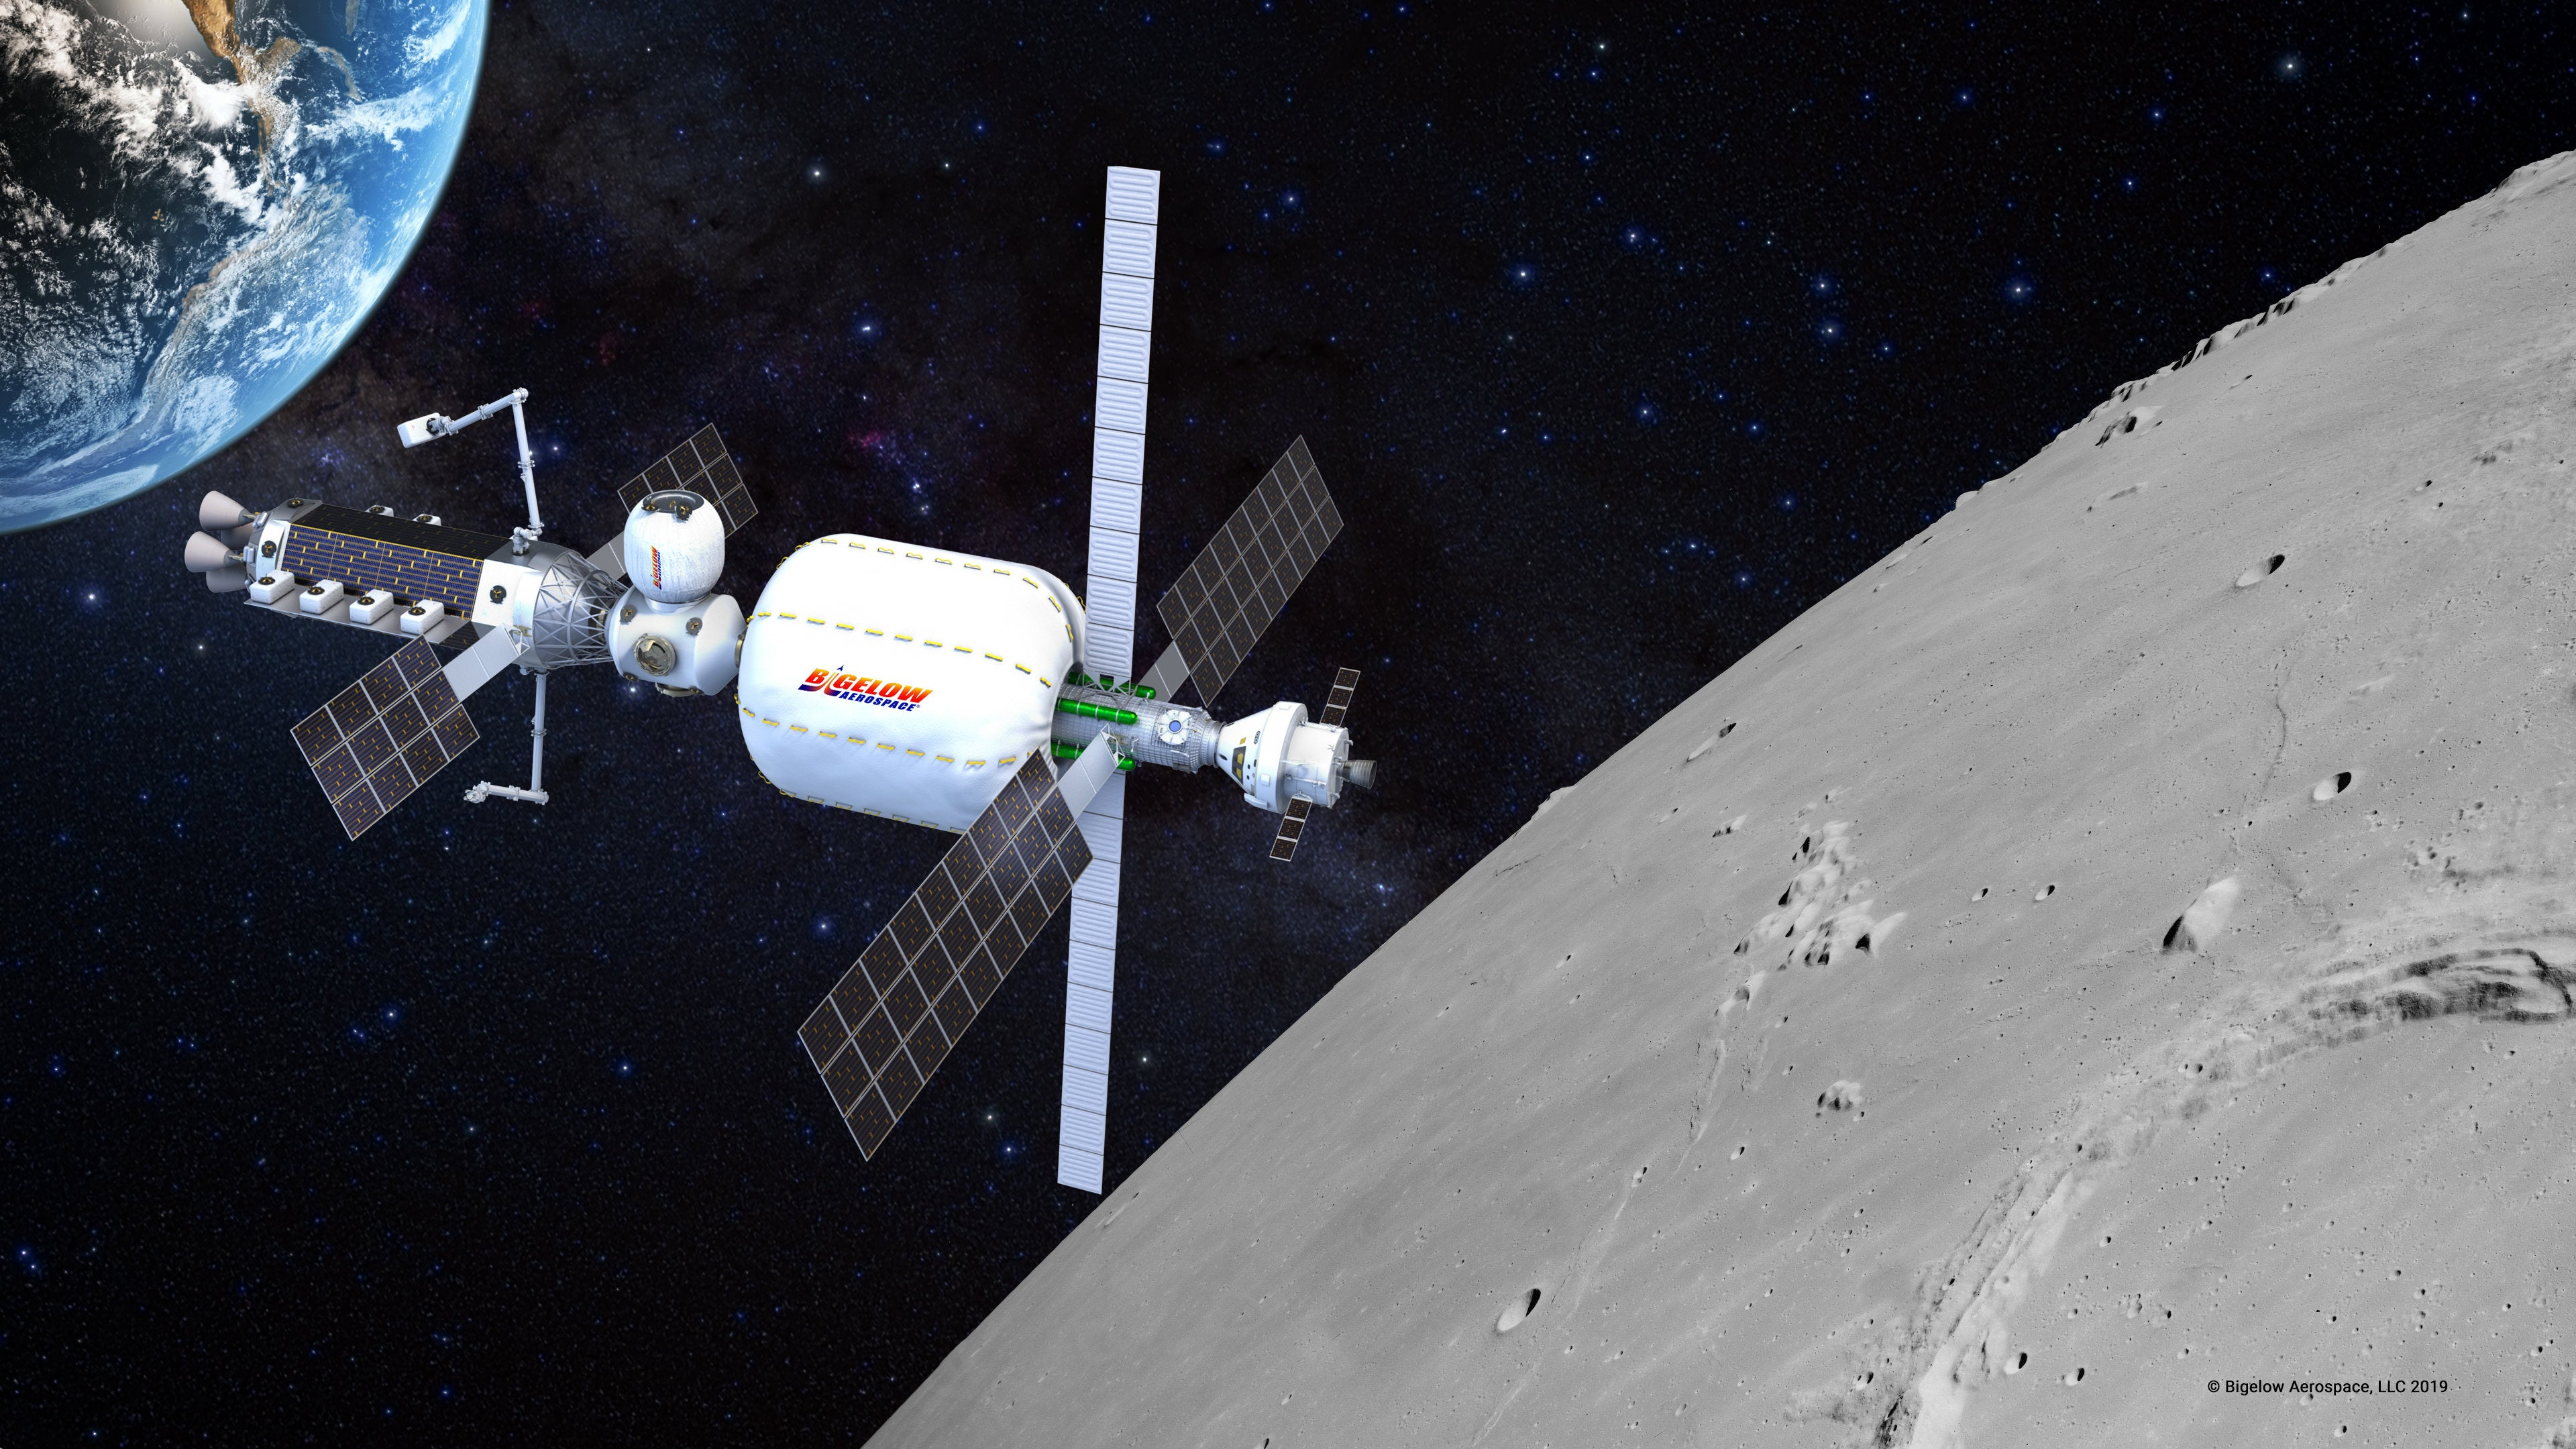 These are the habitation prototypes for NASA's 'Moon-to-Mars' mission